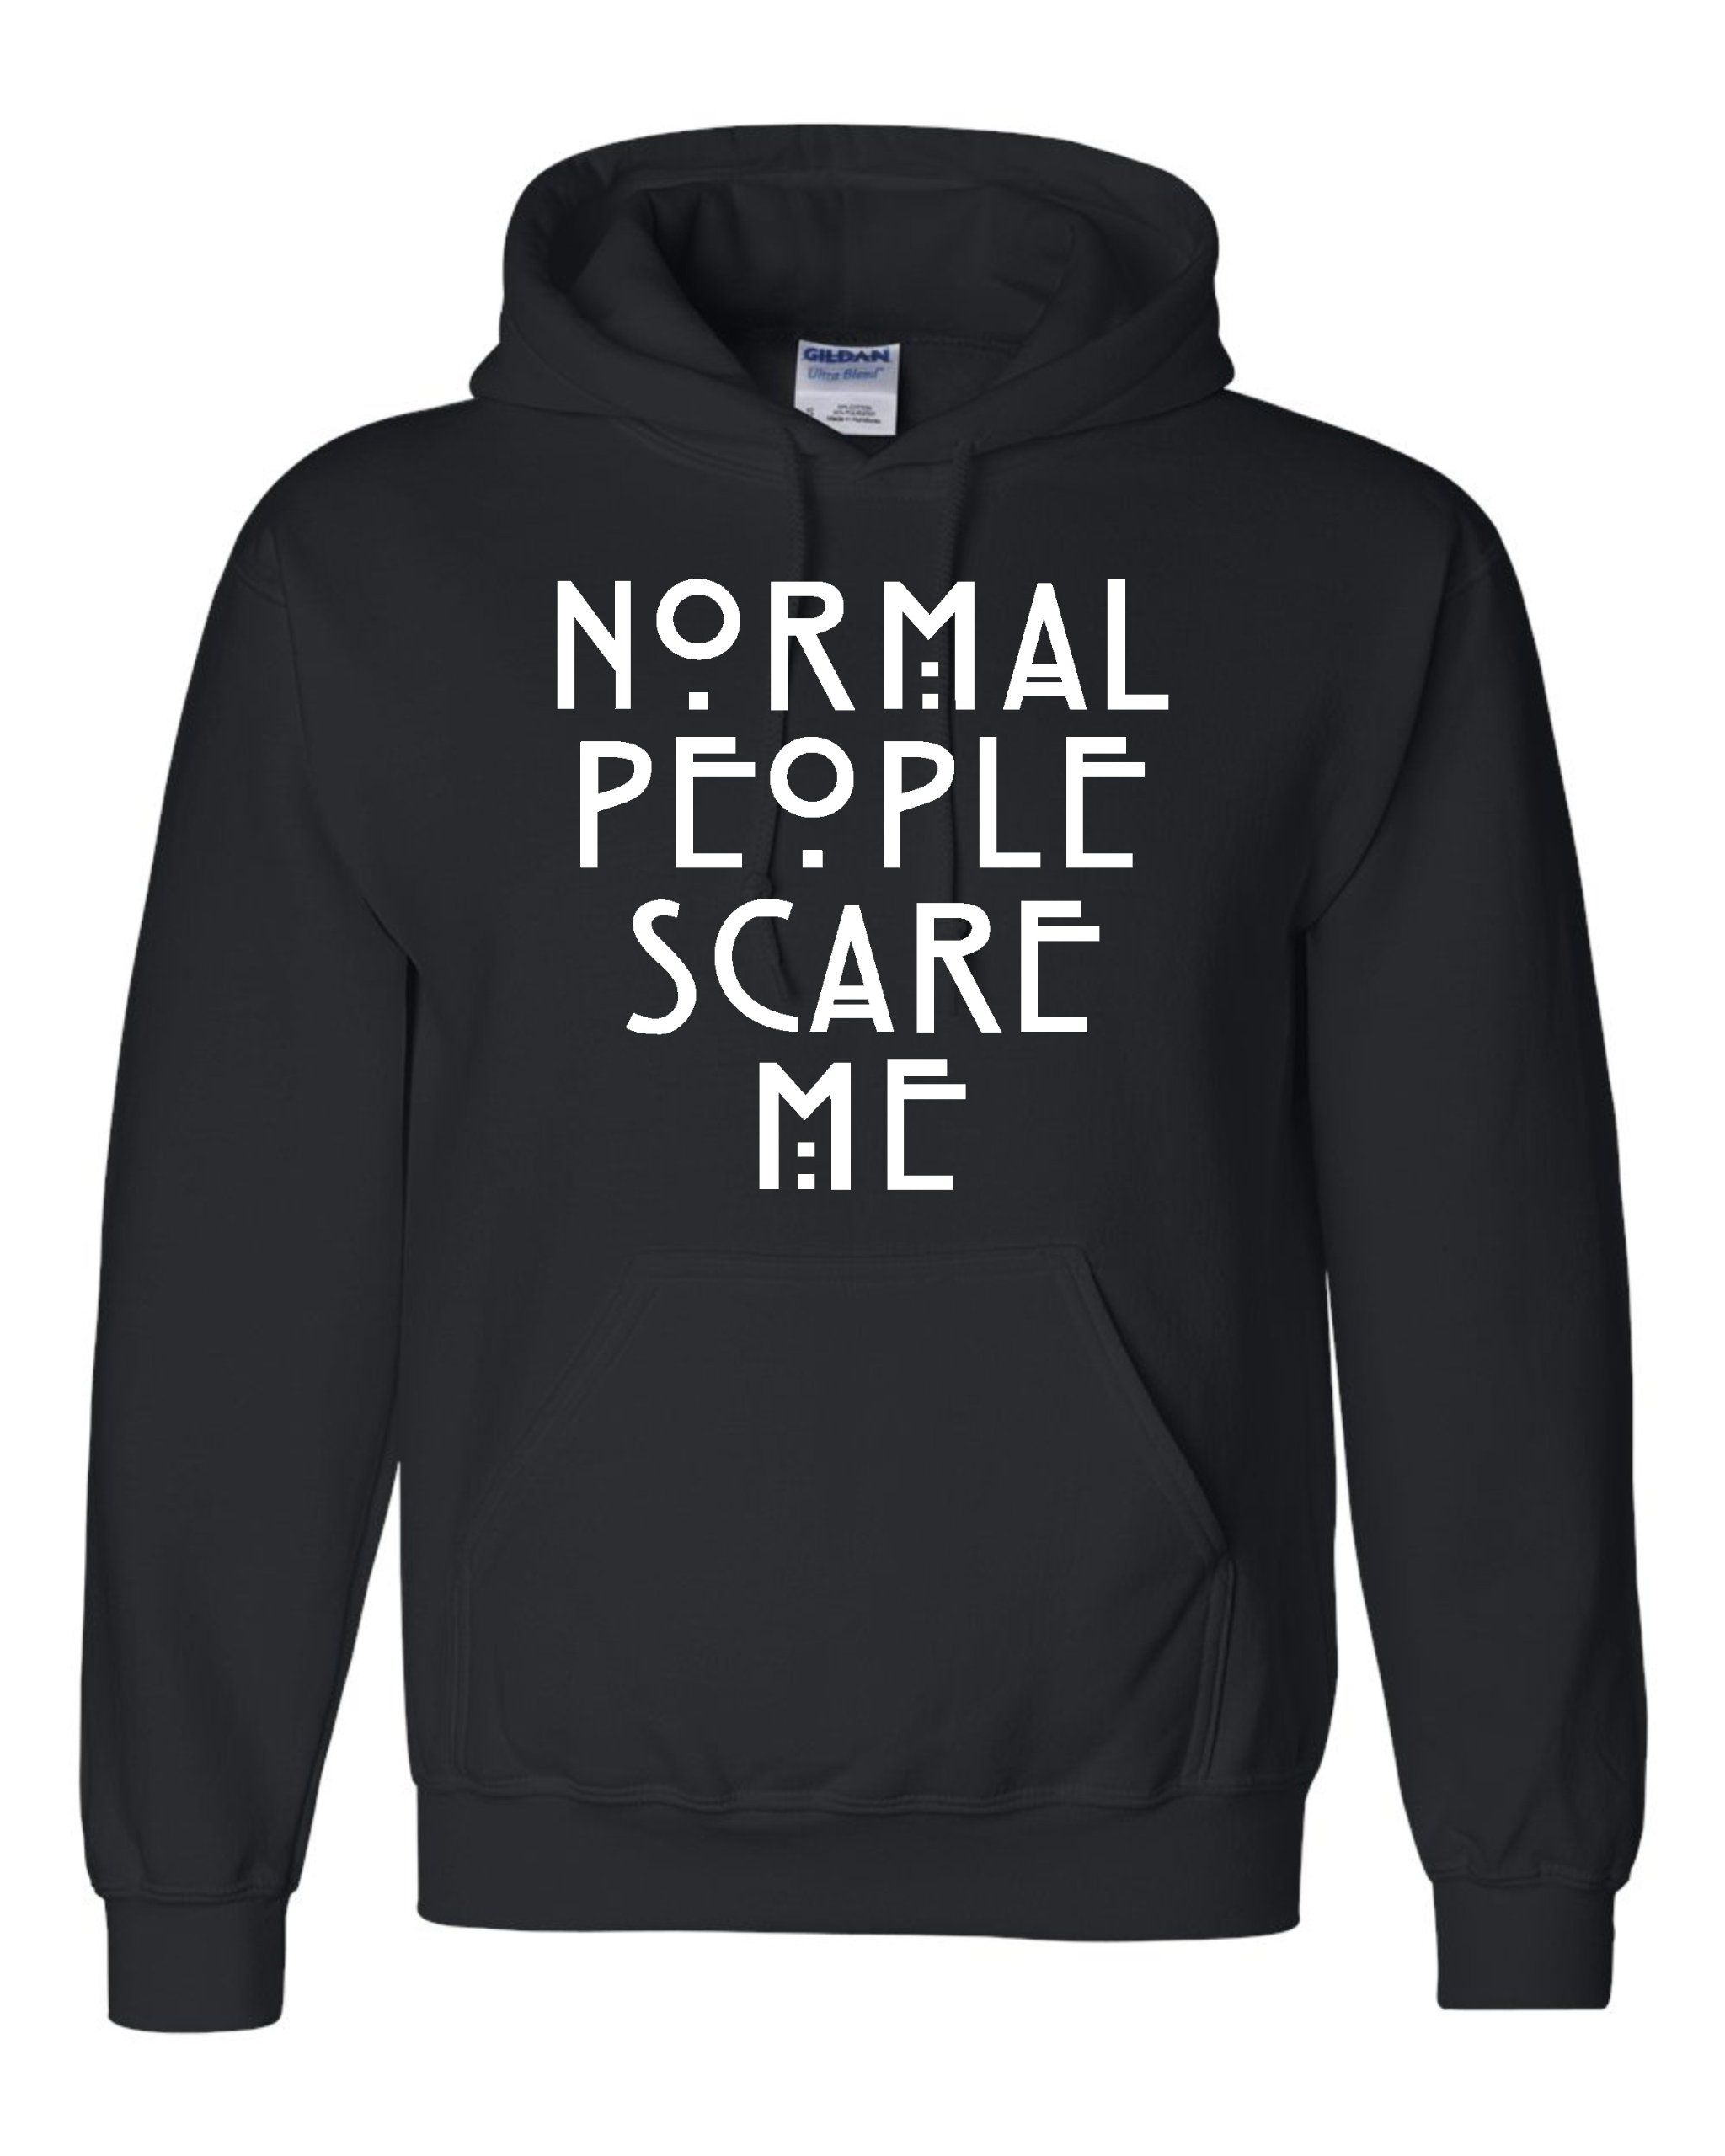 Medium Black Adult Normal People Scare Me Sweatshirt Hoodie